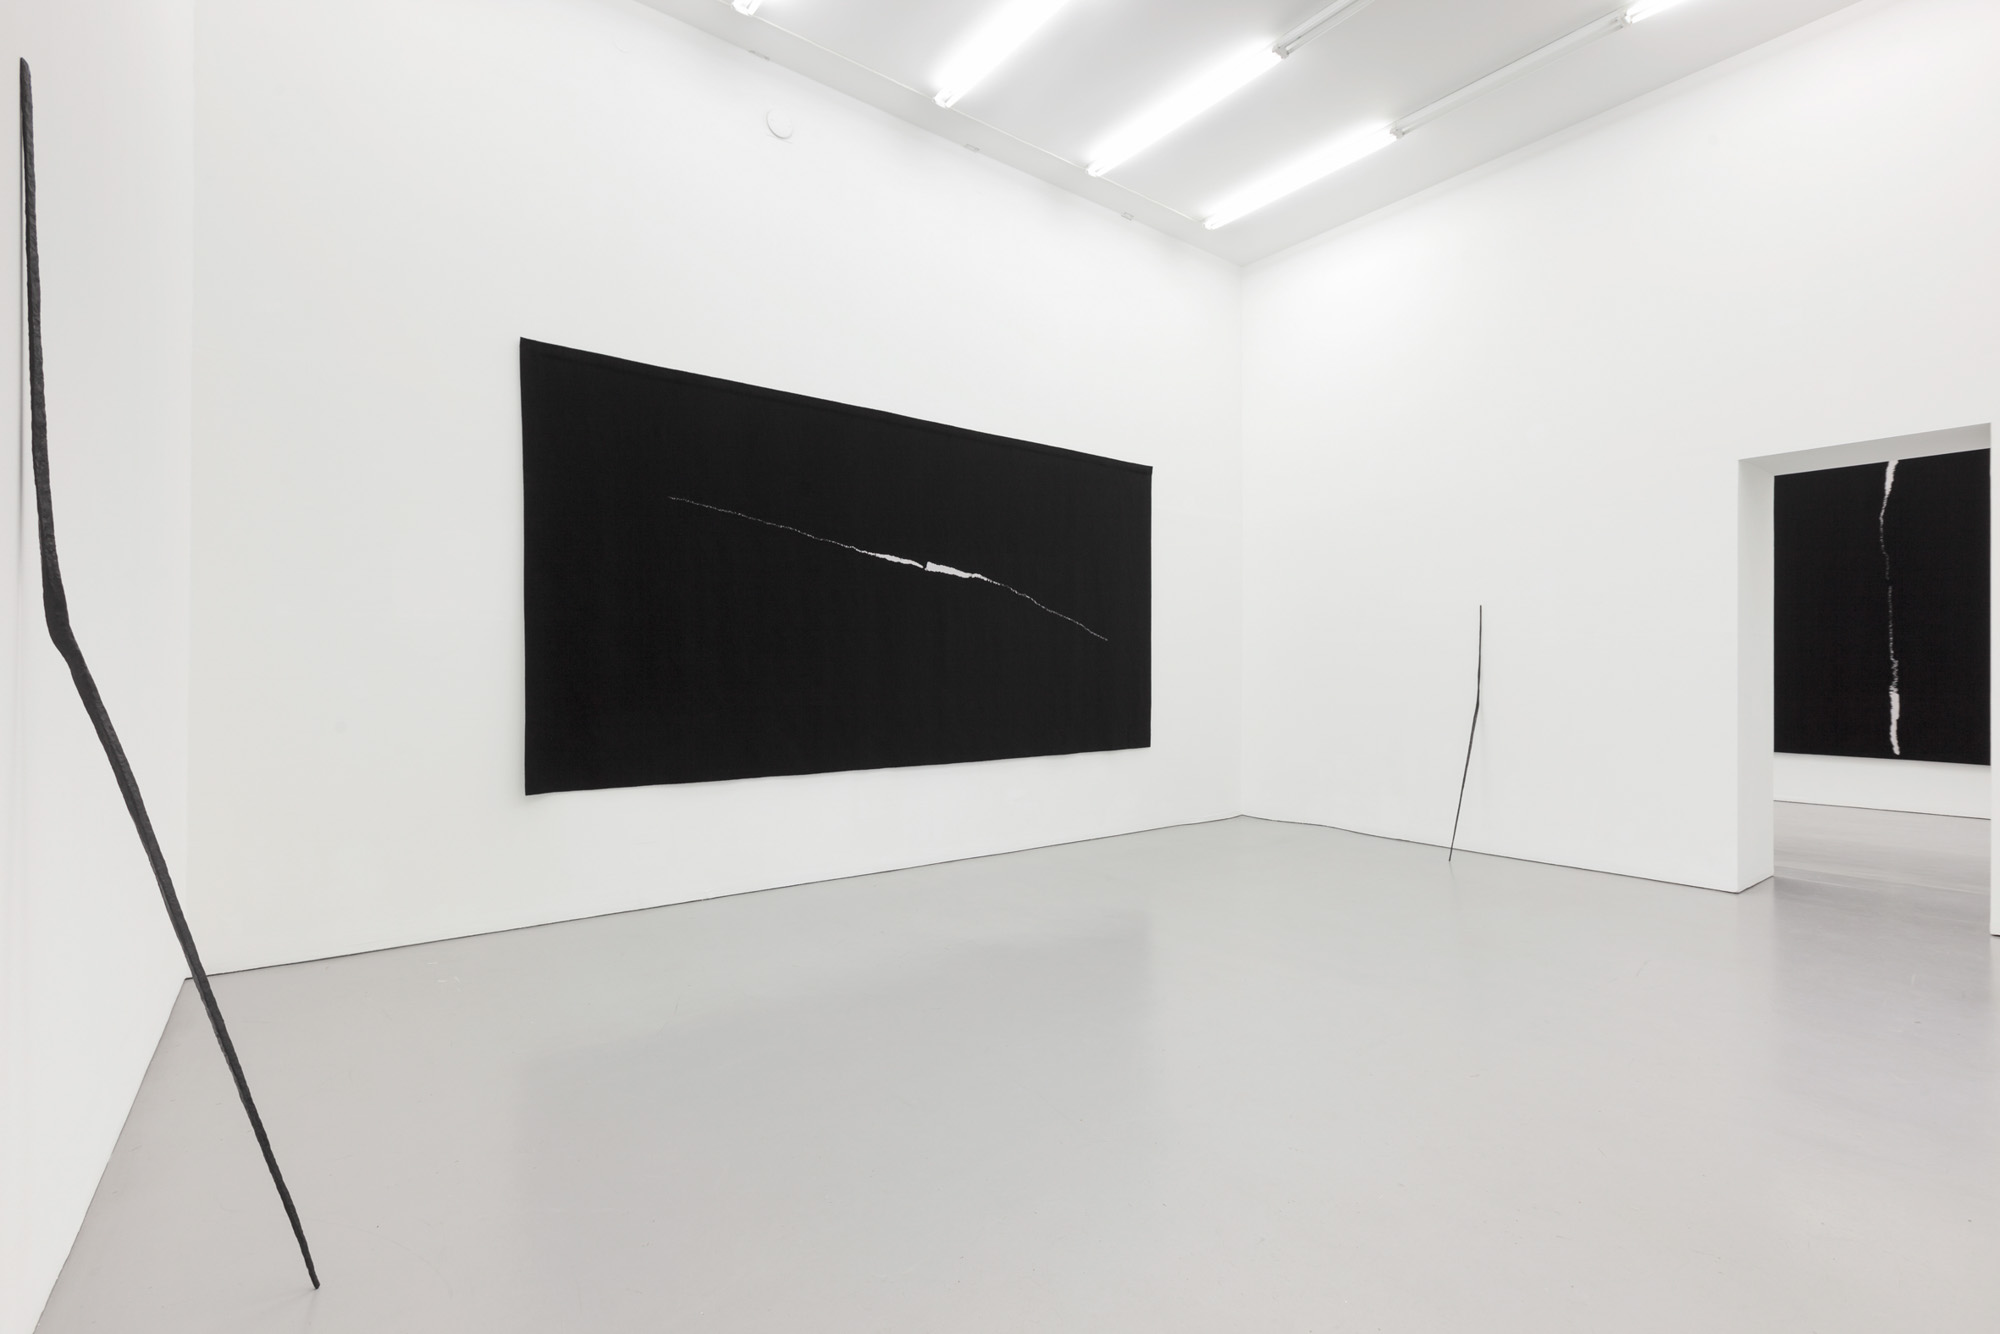 Installation view, JAN GROTH, Selected works 1990-2012, Galleri Riis, Stockholm 2012